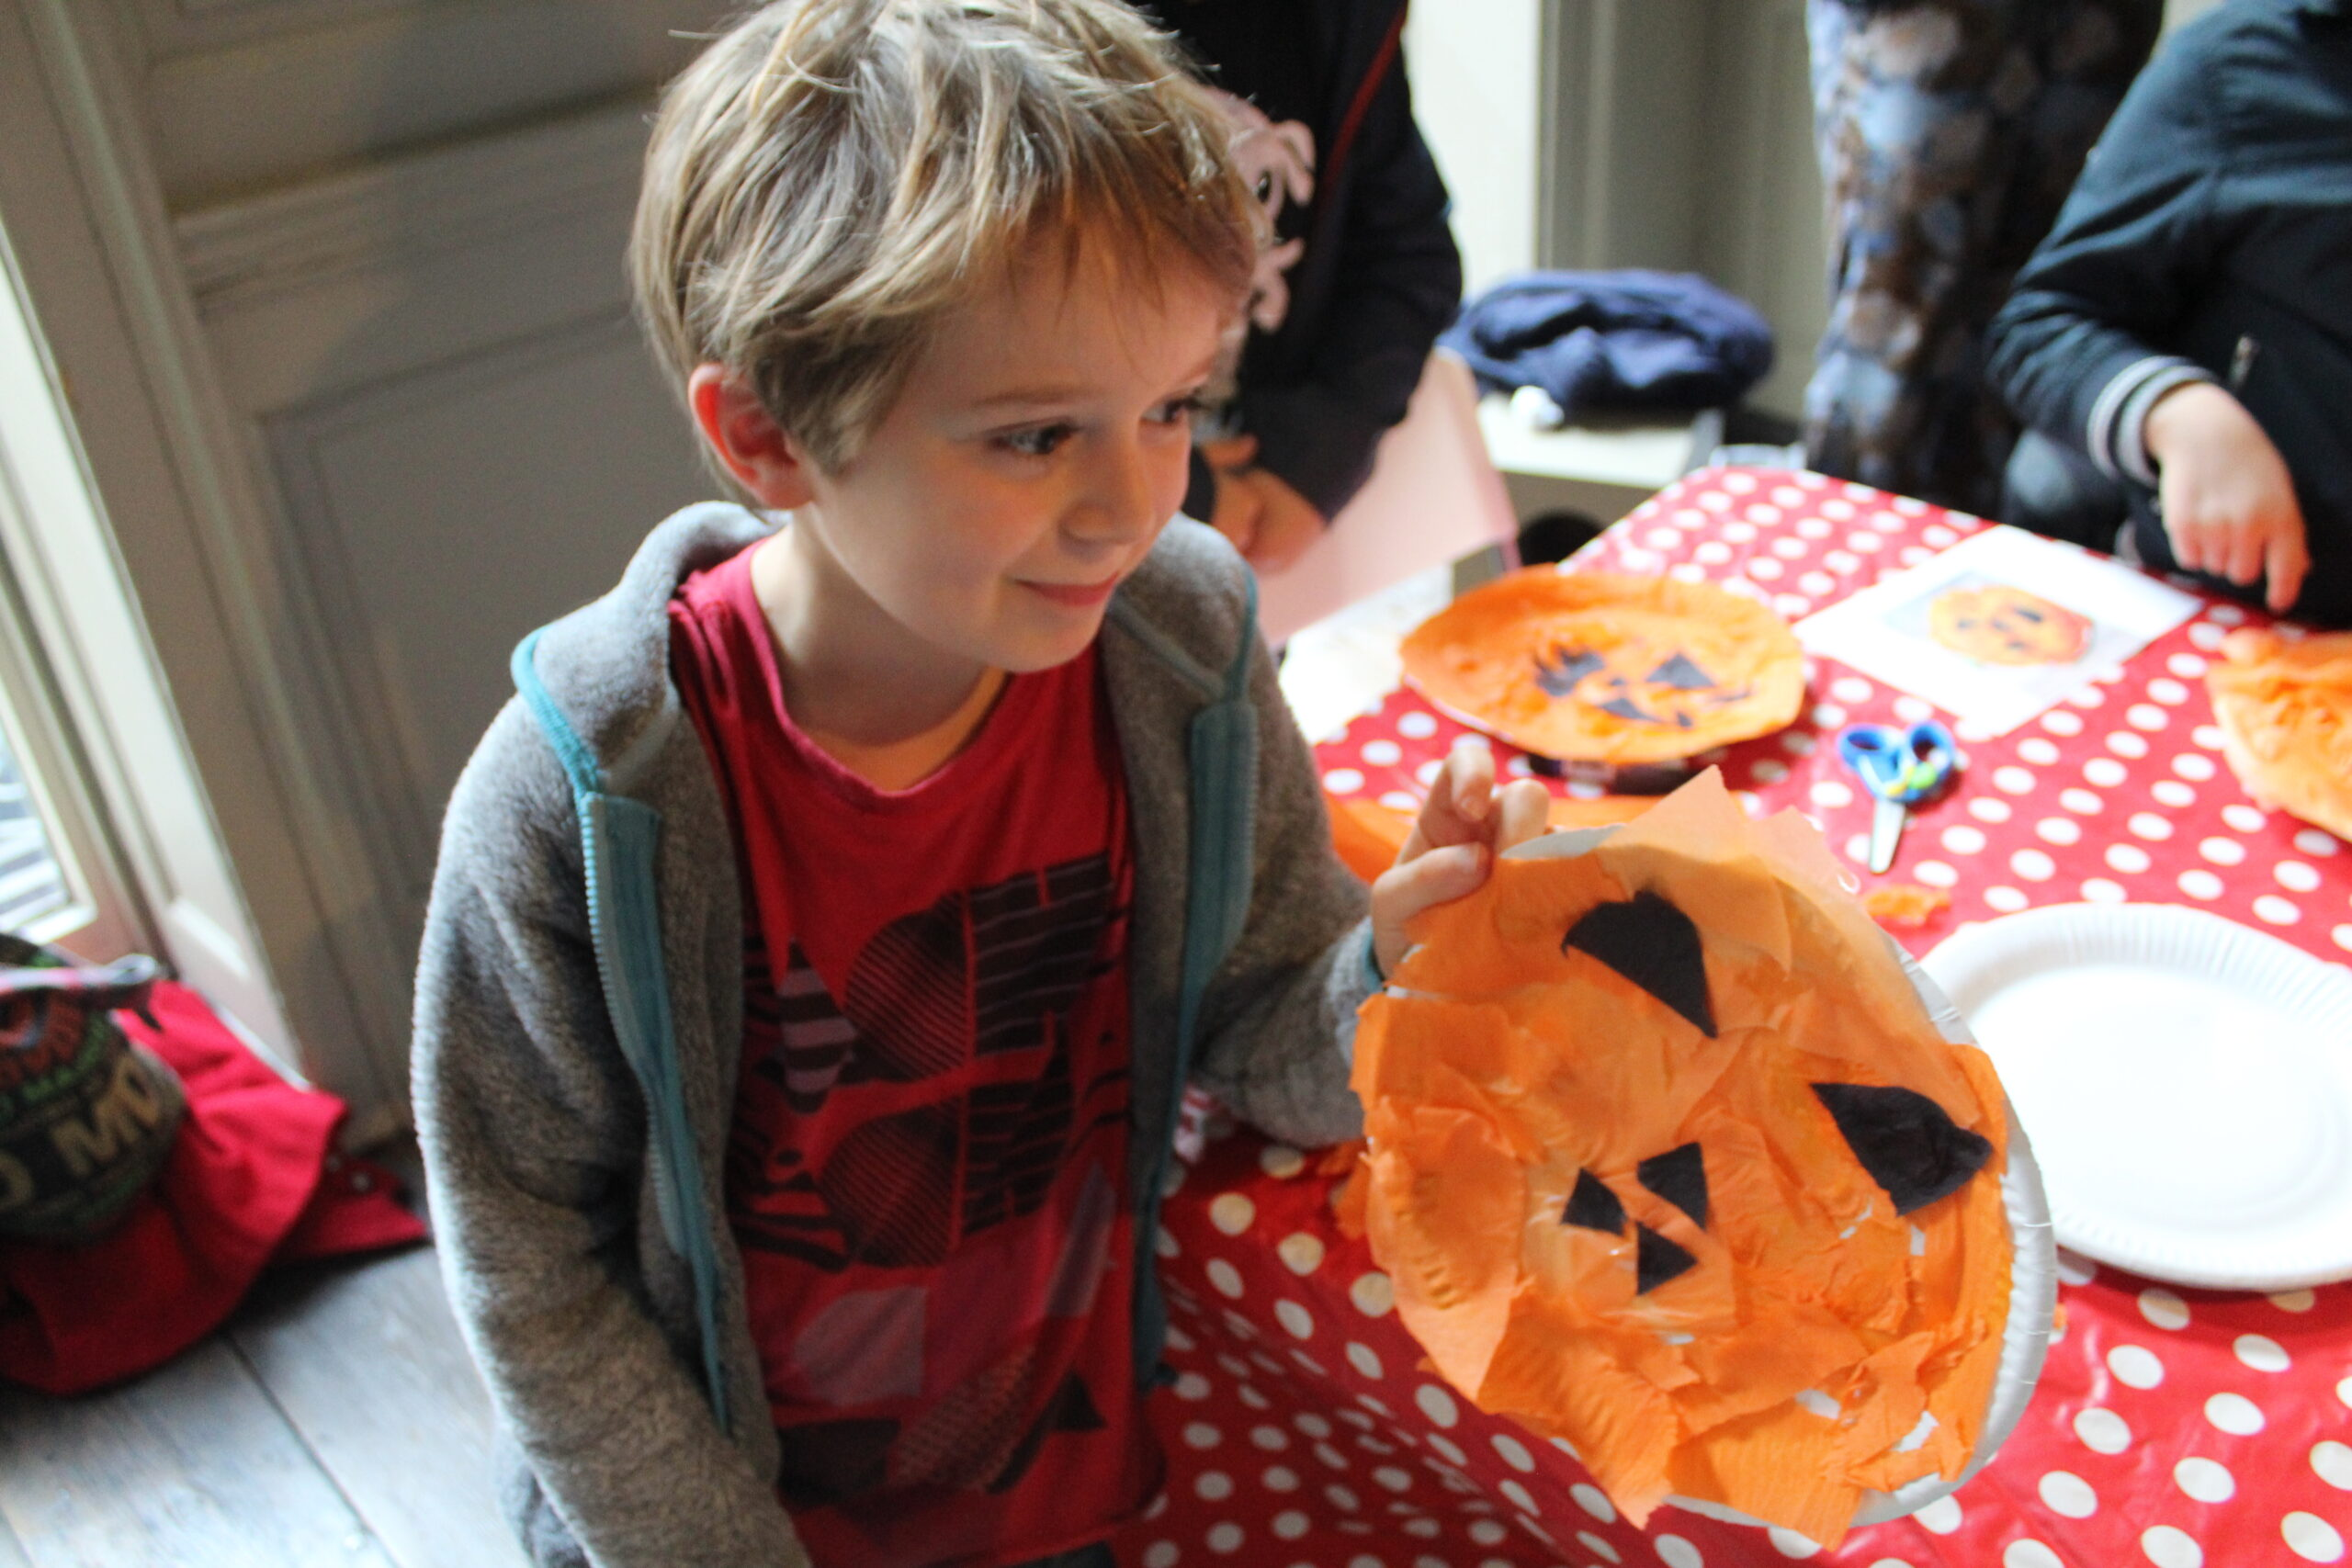 A young boy holds up the pumpkin face he has made using a paper plate and coloured paper.